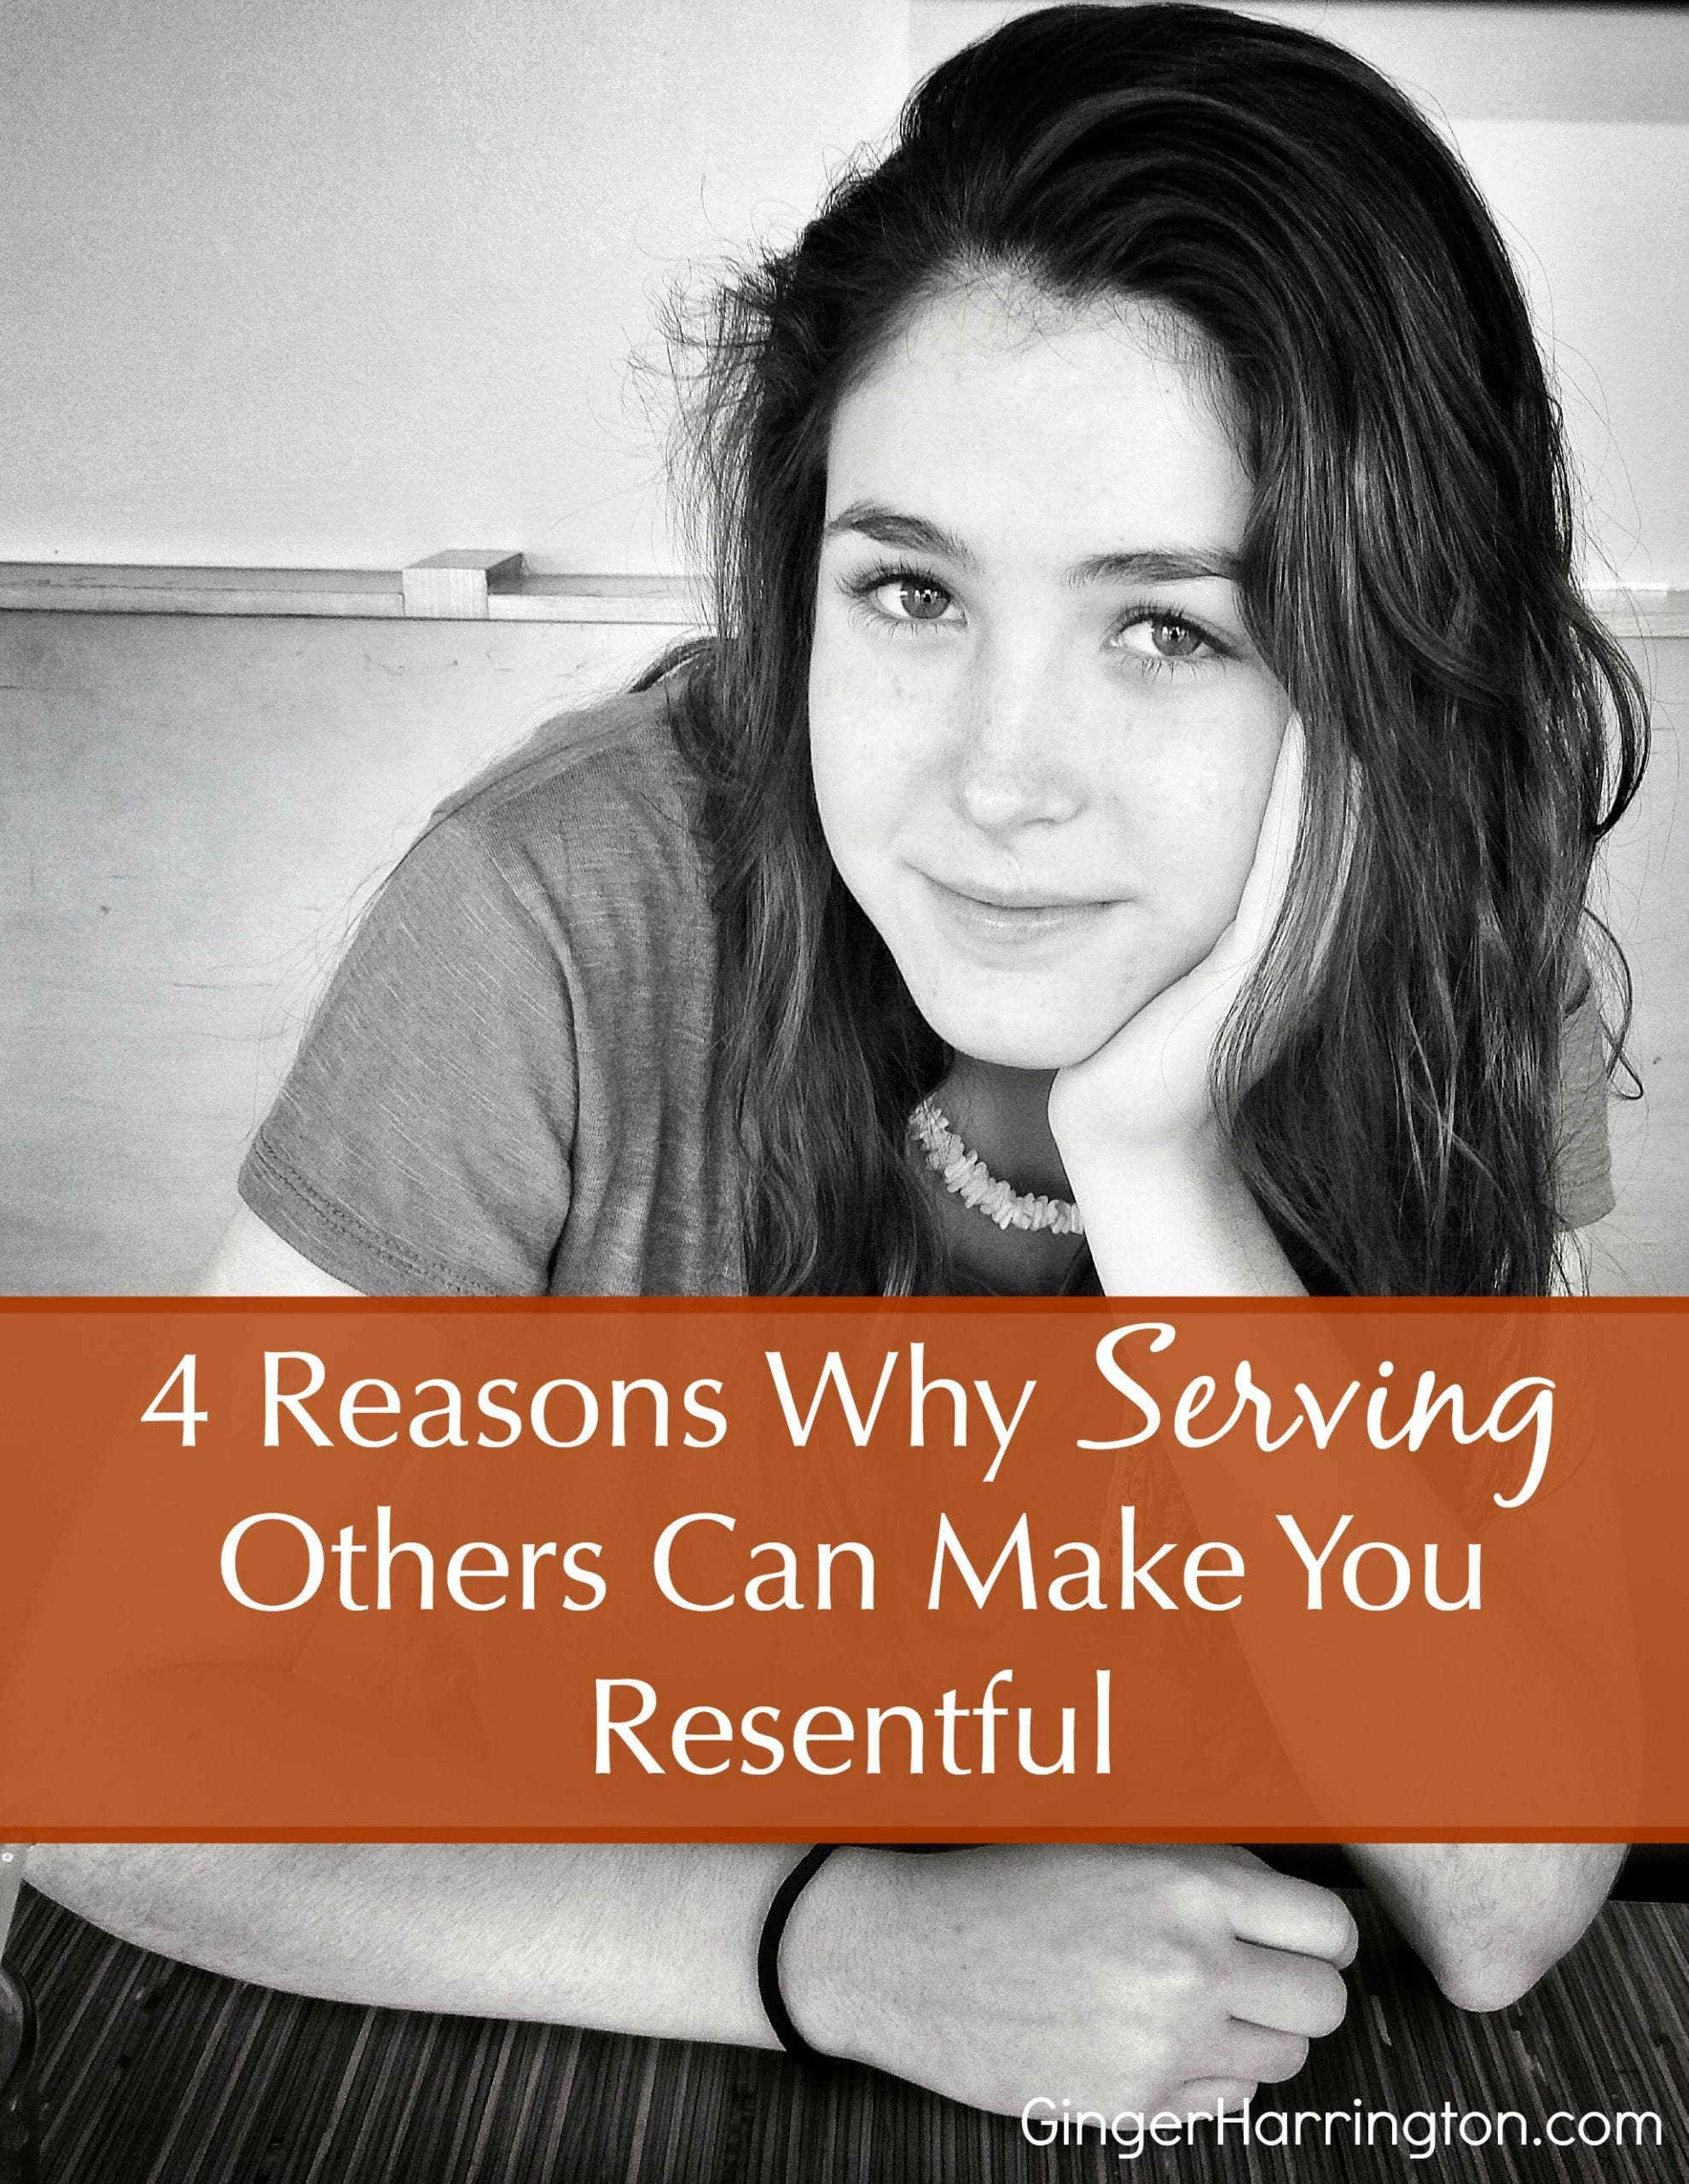 Four Reasons Why Serving Others Can Make You Resentful